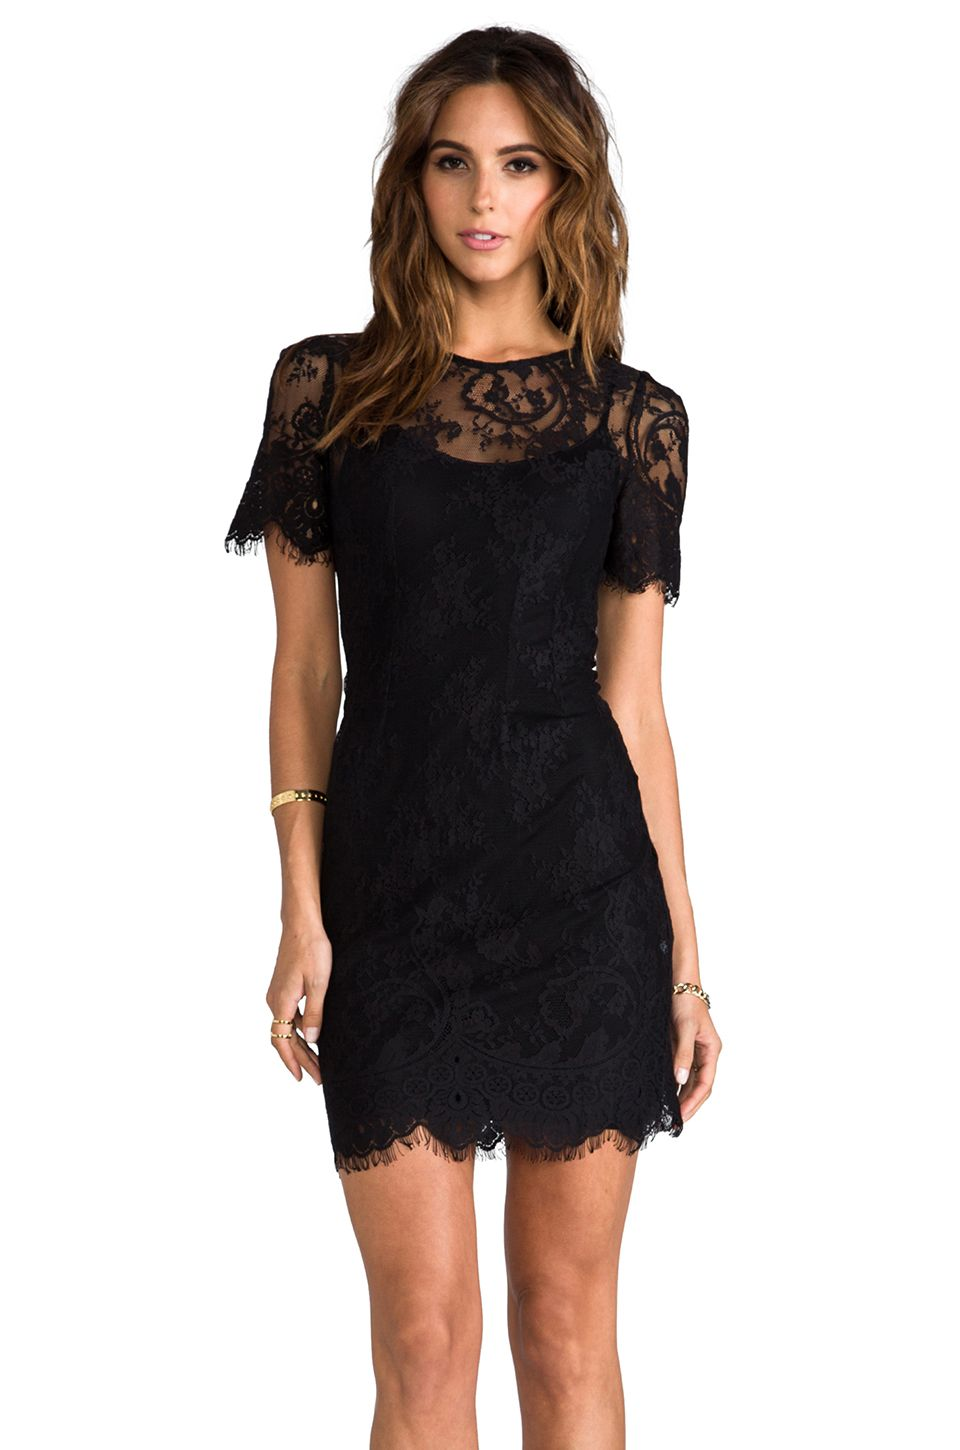 957a217b41 Shop for BB Dakota Princeton Ponte Dress w  Lace Sleeves in Black at  REVOLVE.  REVOLVEclothing EVETTE LACE DRESS WITH SLIP WHITE SUEDE